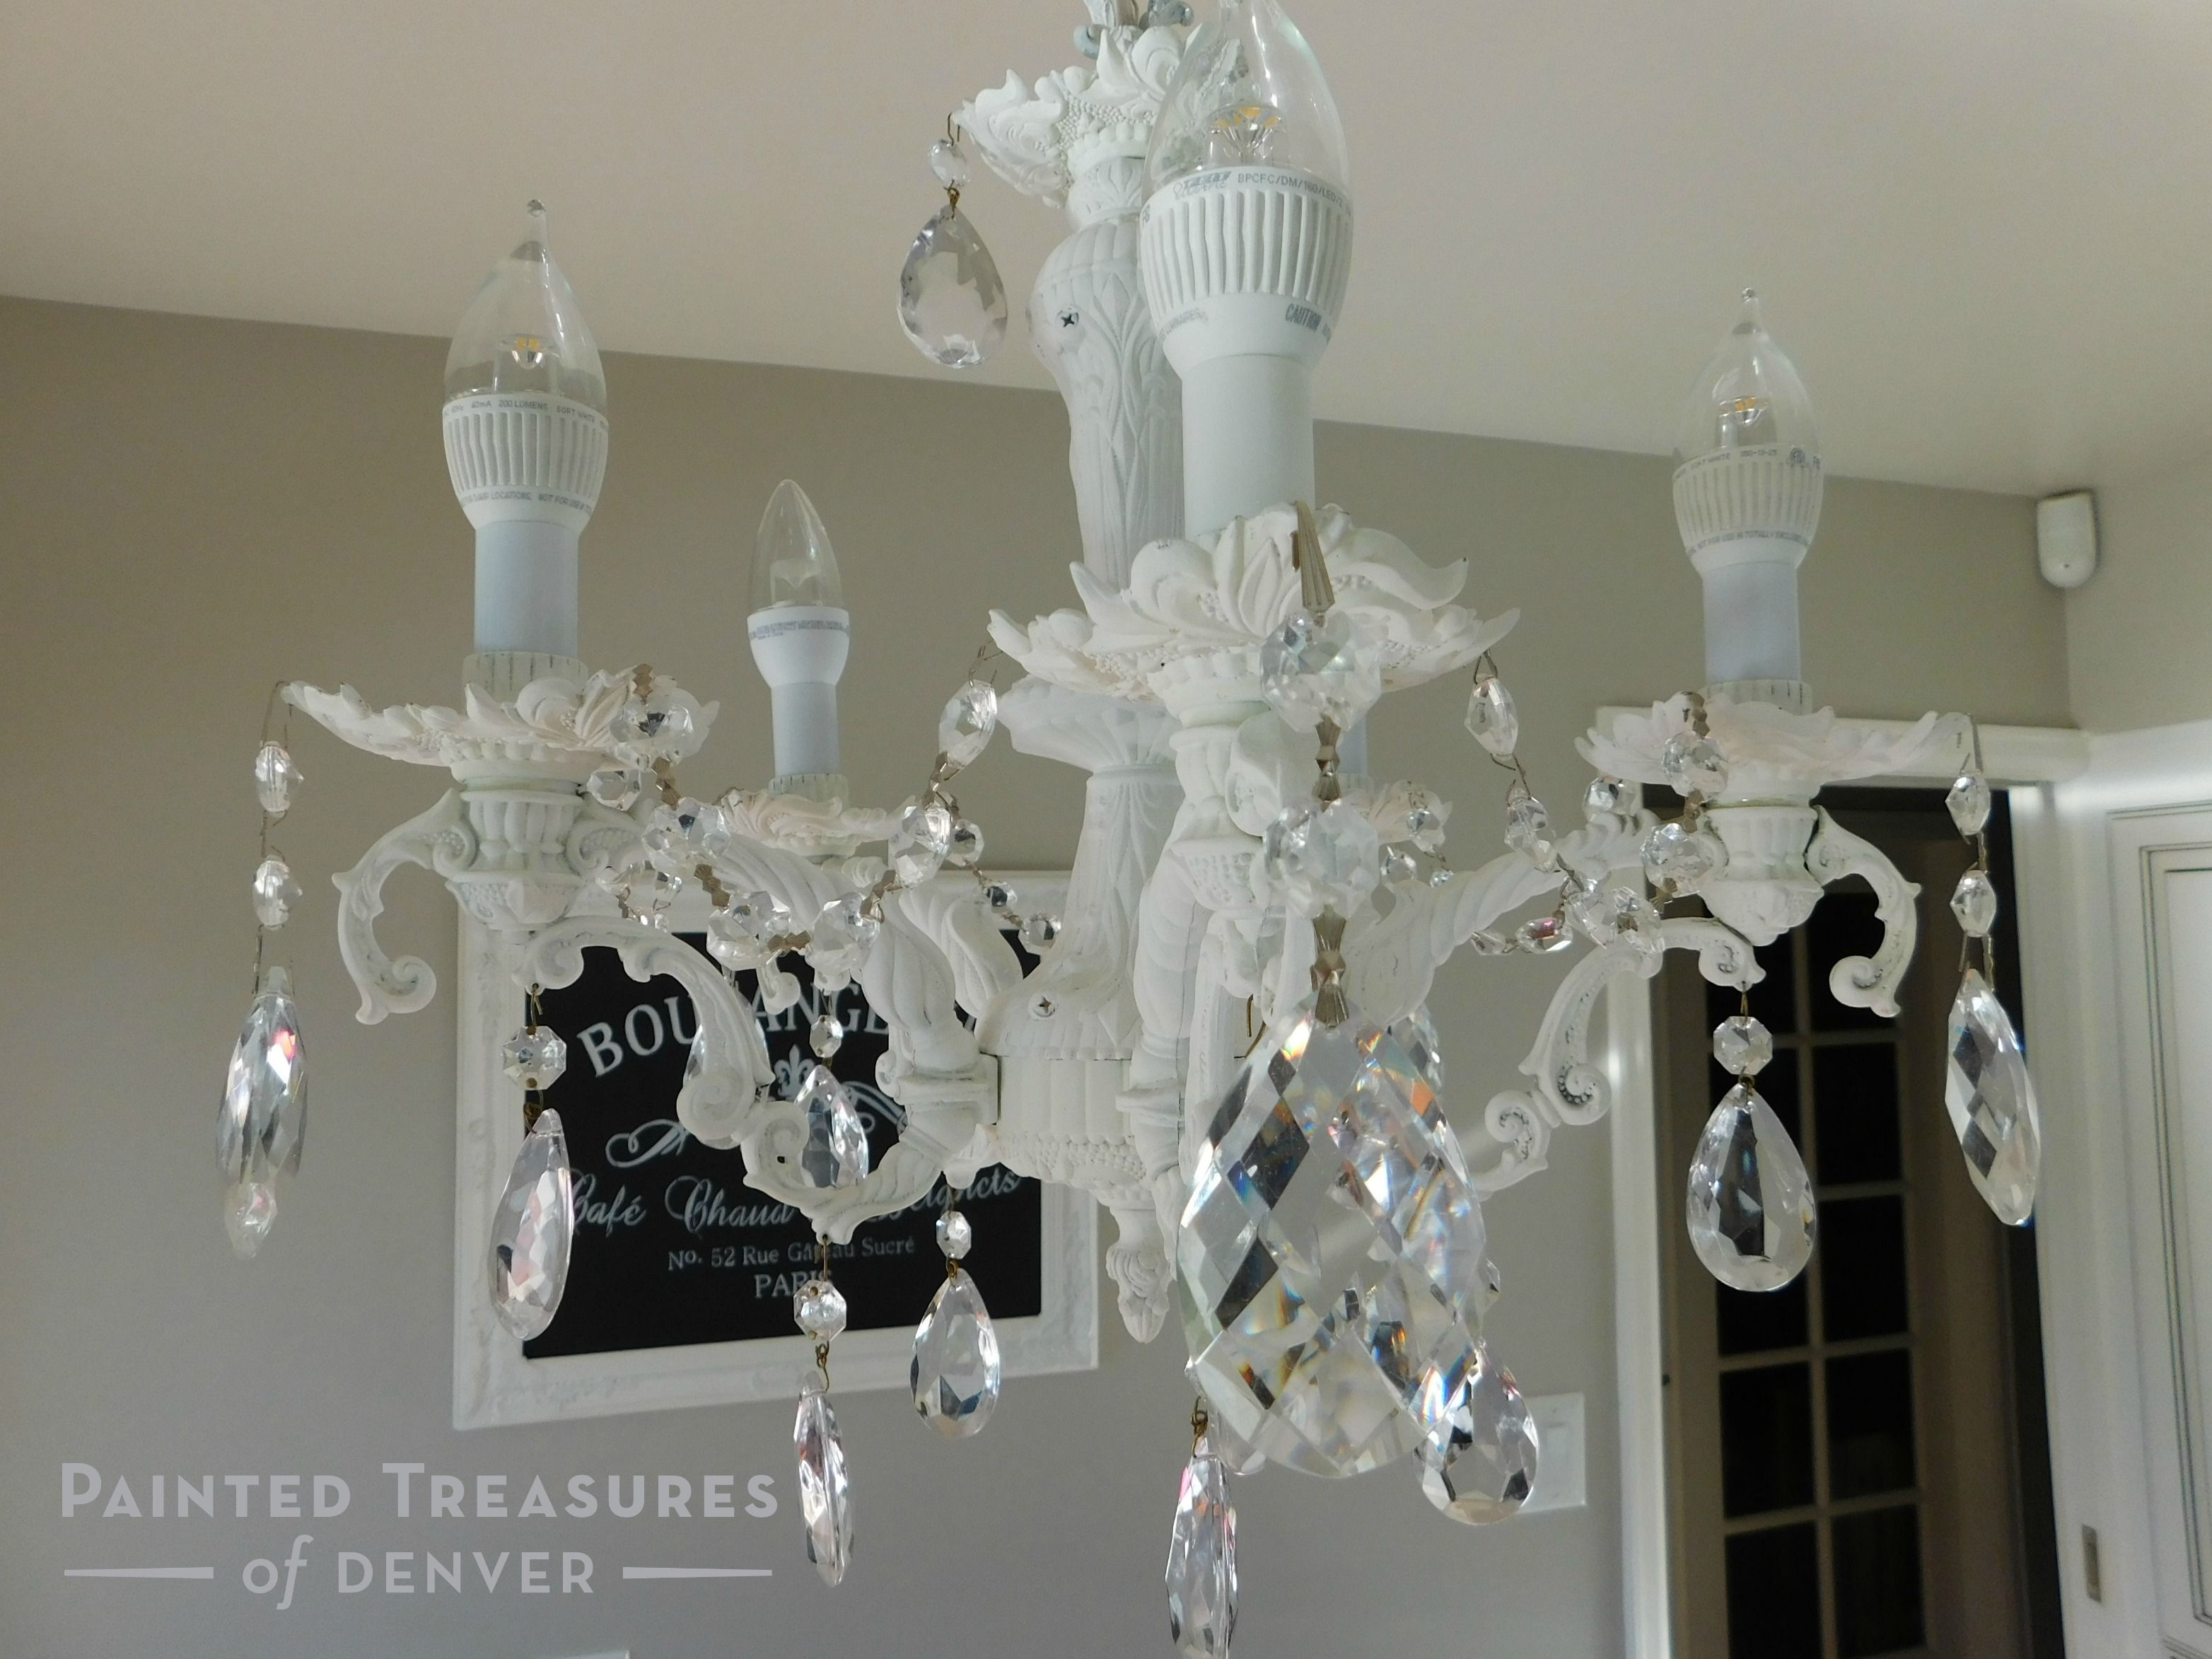 fixtures lovely media room lighting 4. This Lovely Chandelier Was Repainted With Heirloom Traditions A La Mode Chalk Type Paint And Precious Fixtures Media Room Lighting 4 R